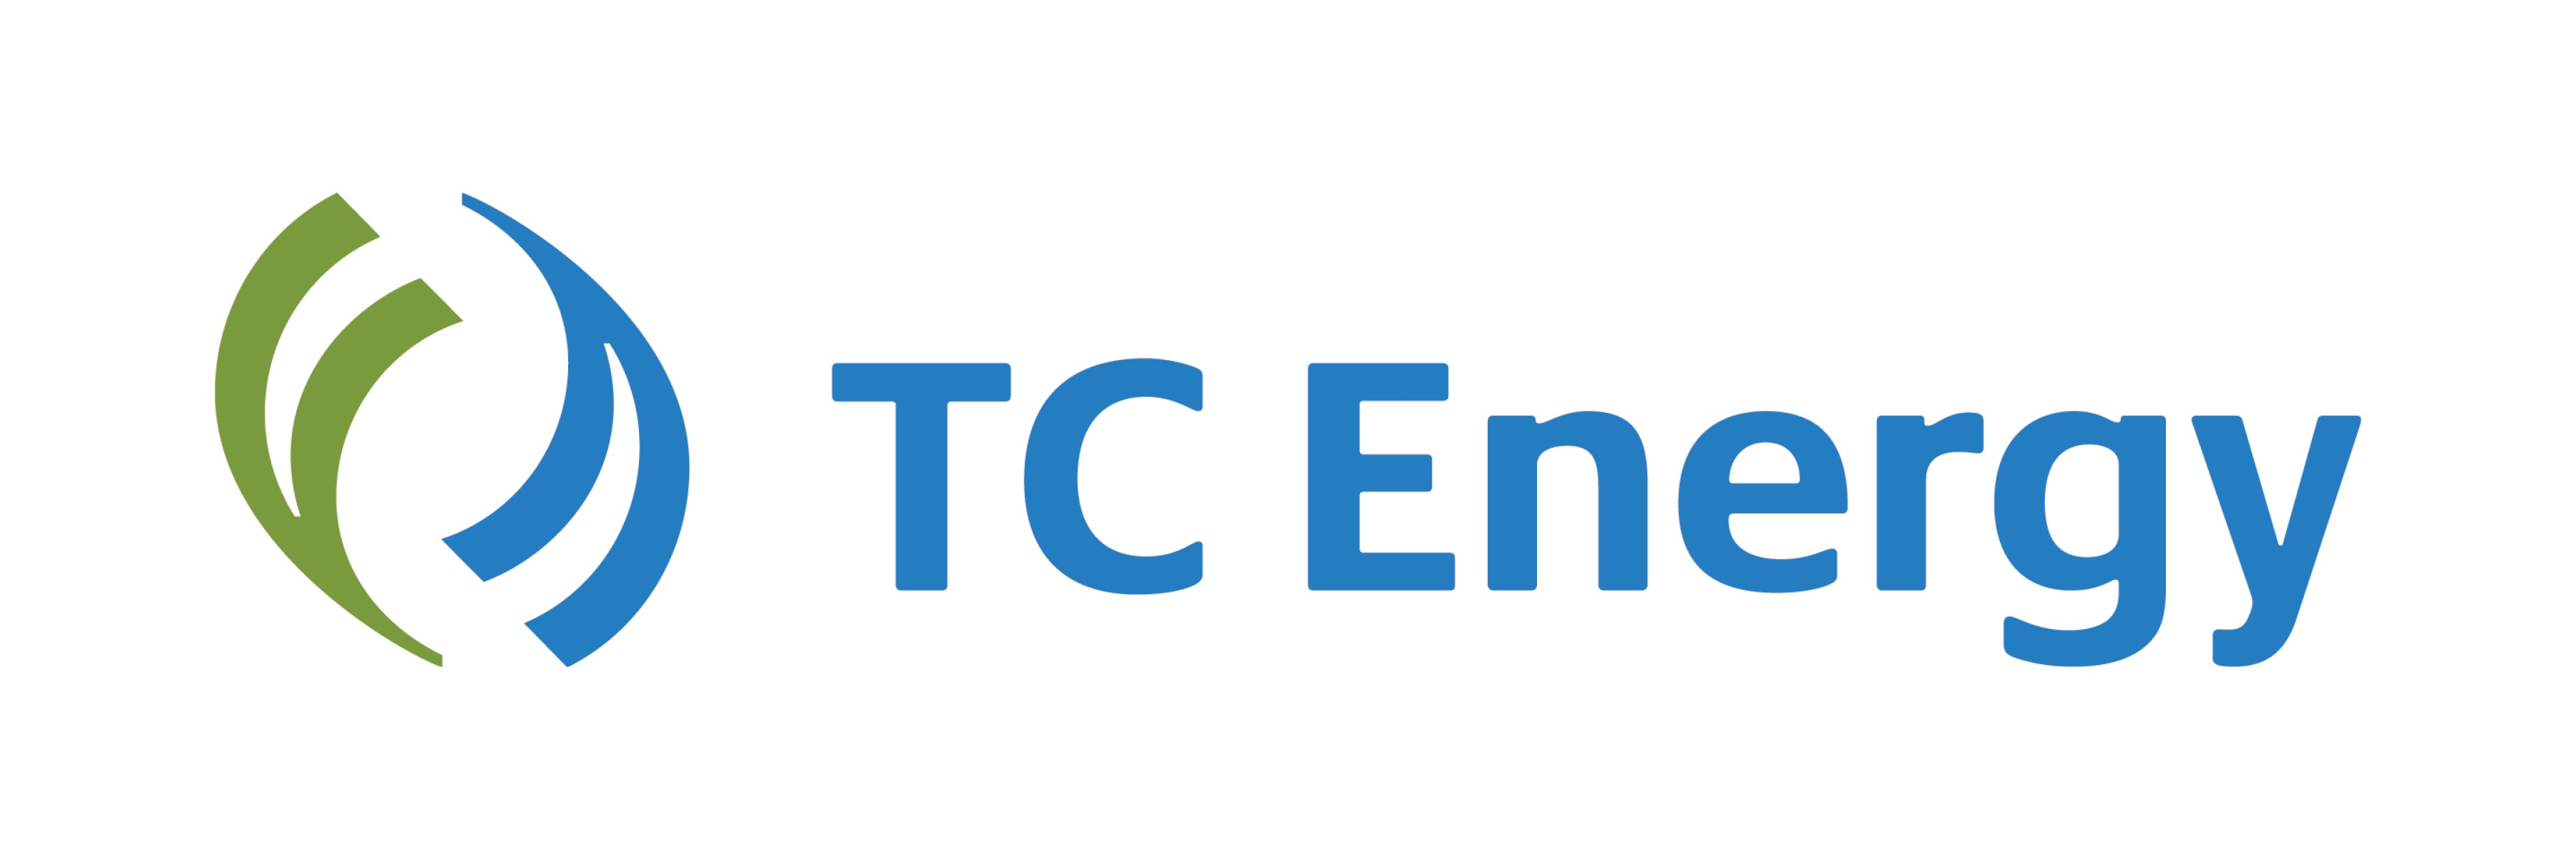 TC Energy partners with Comp-U-Dopt to open TC Energy Tech Hub supporting youth in STEM (Science, Technology, Engineering and Math)